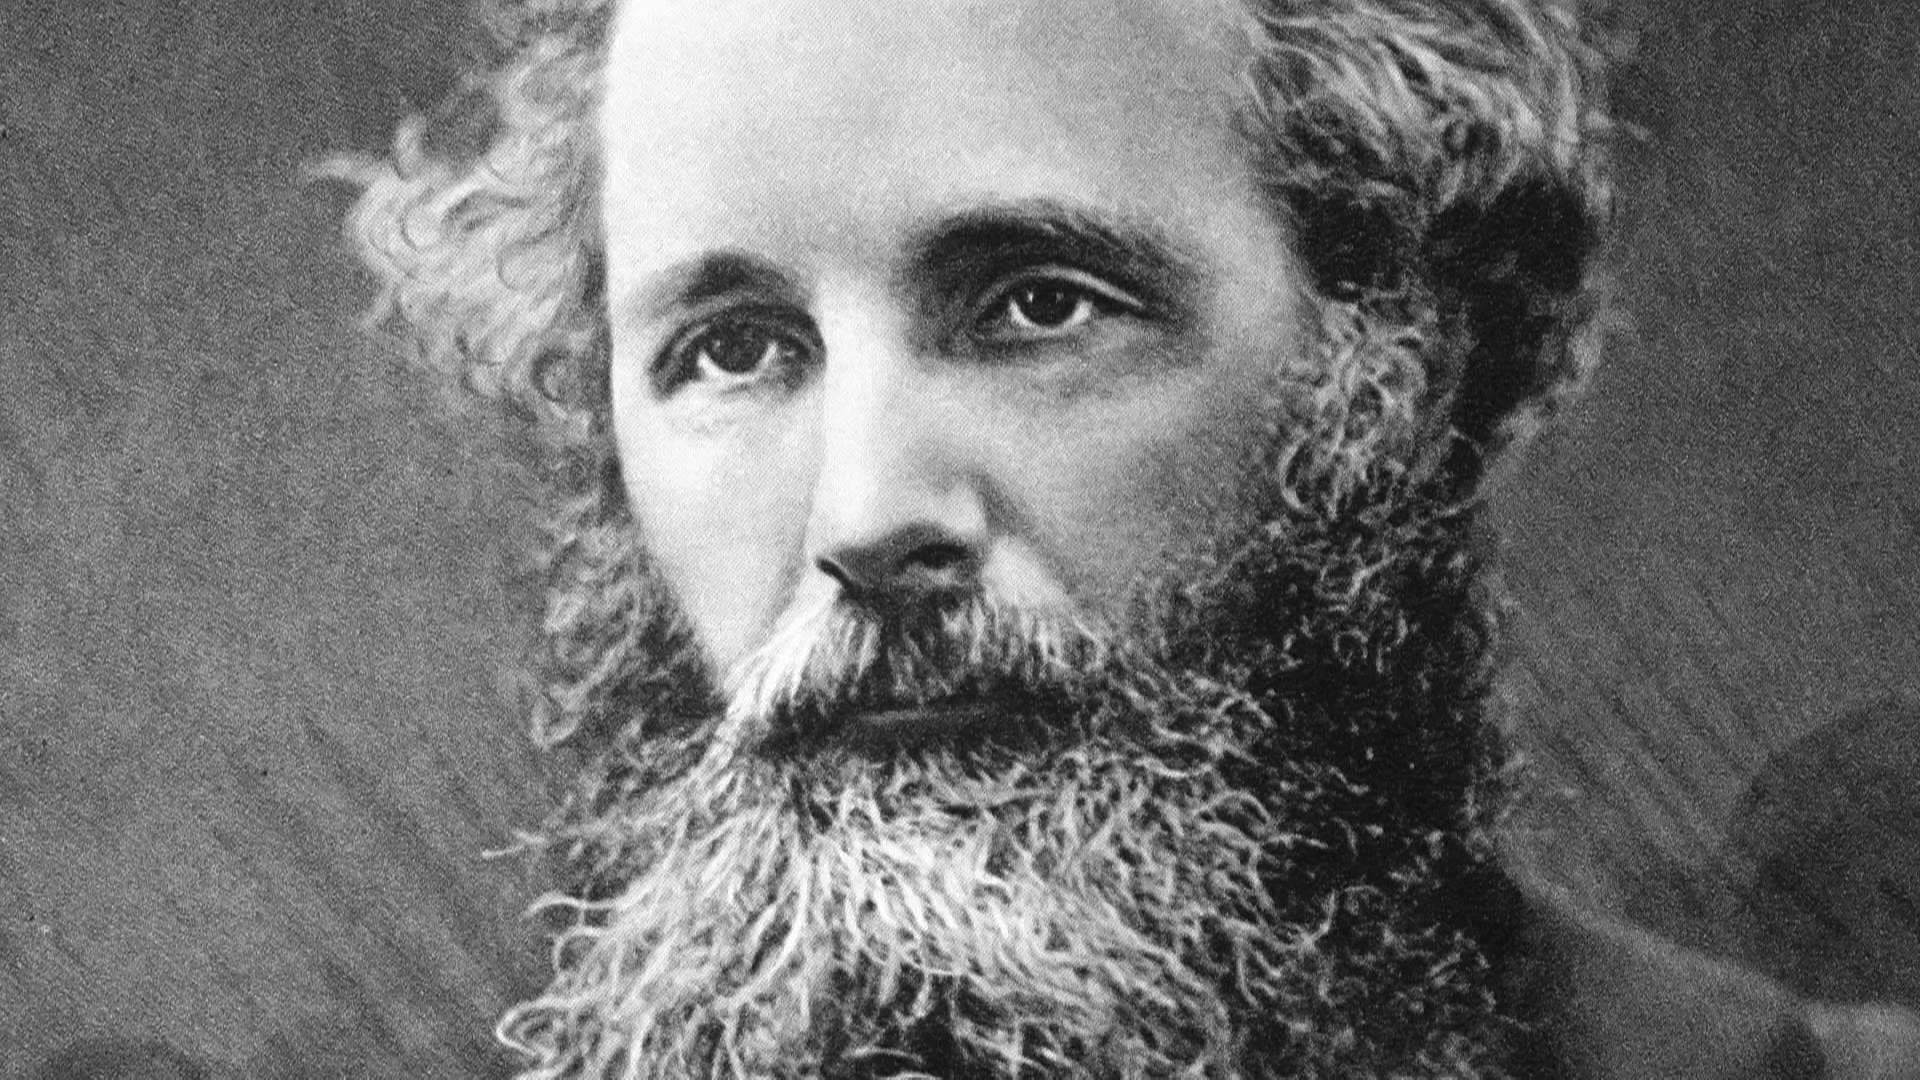 james clerk maxwell resources Albert einstein said that james clerk maxwell made greater contributions to physics than anyone except isaac newton.